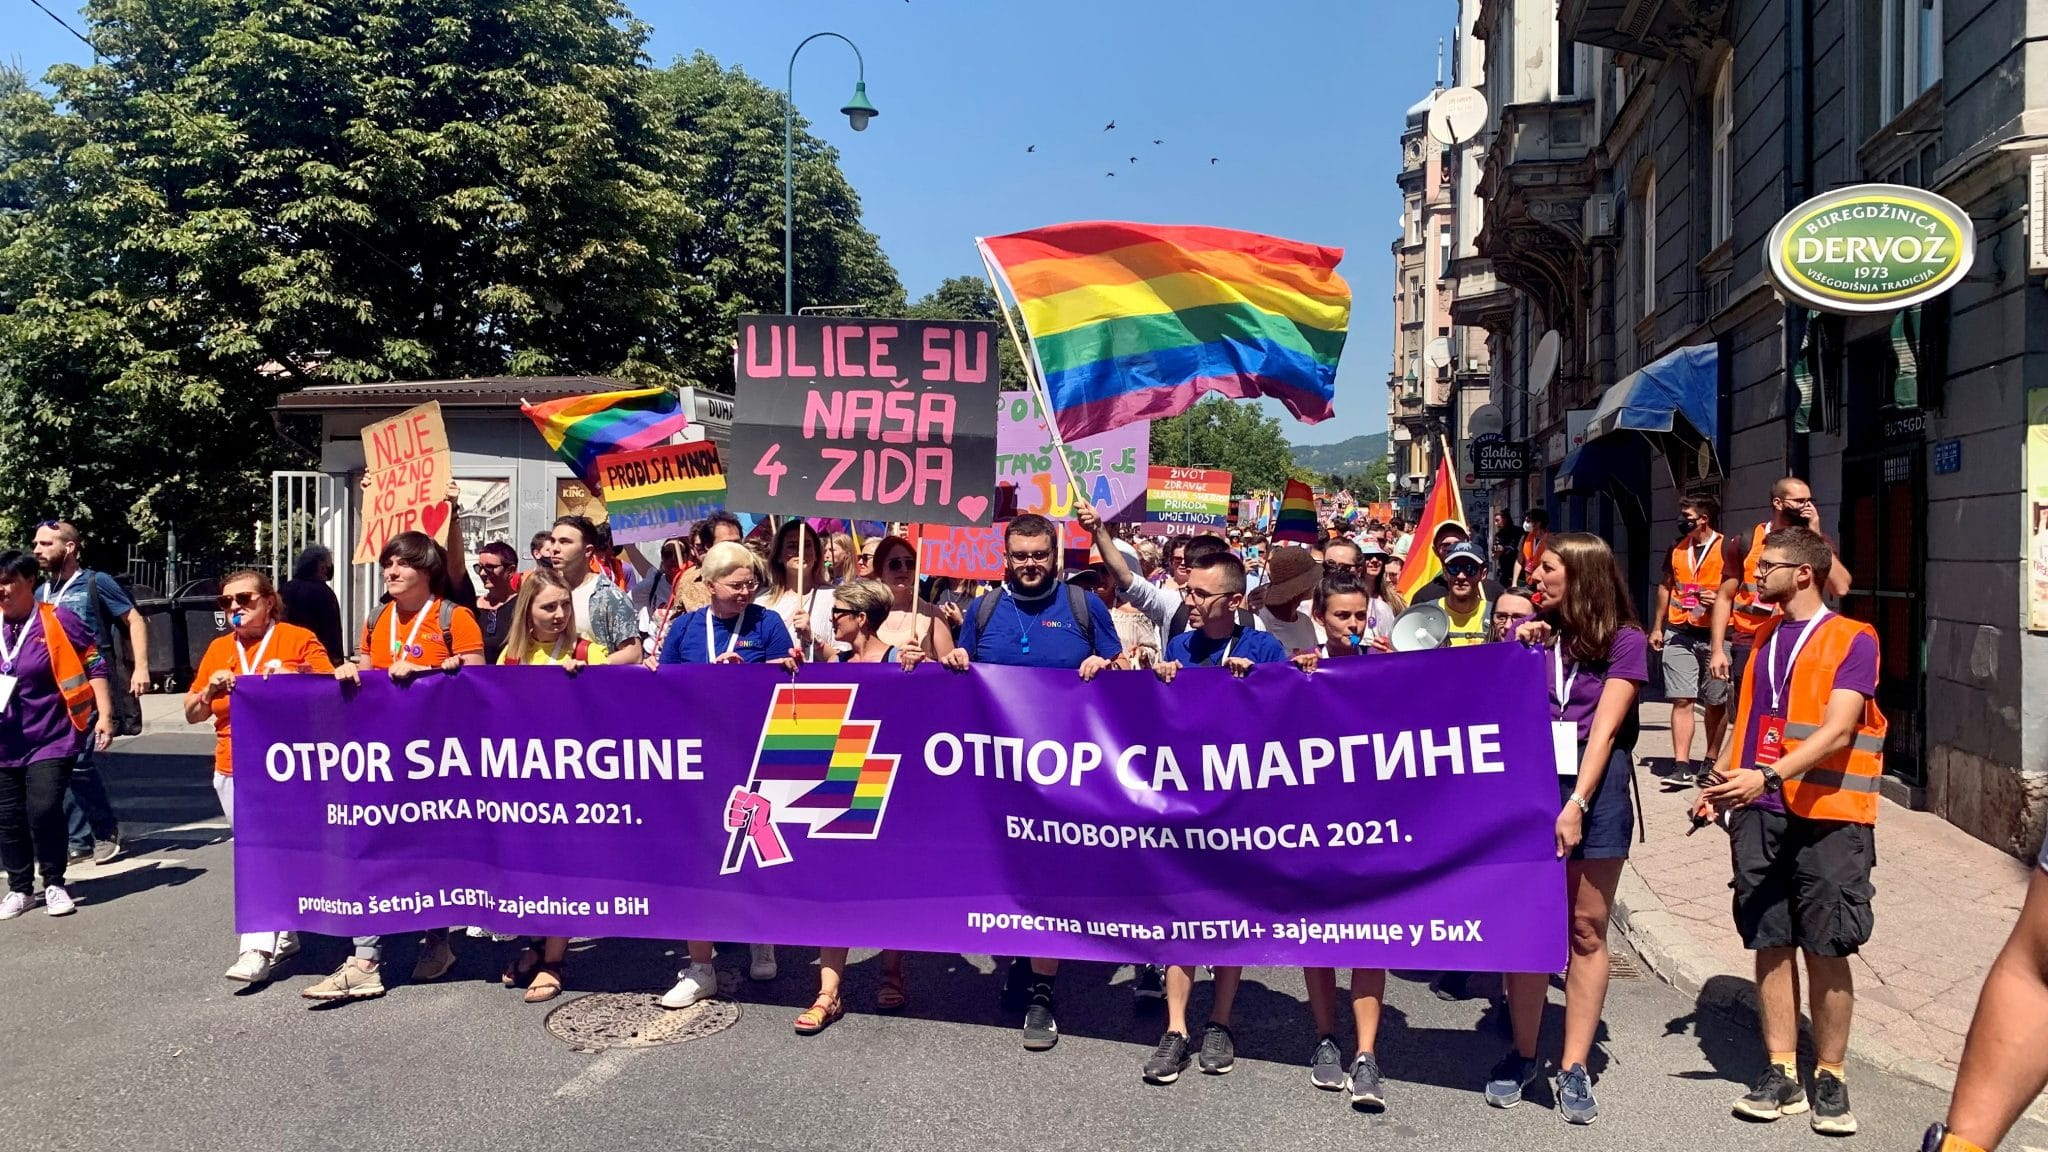 Sarajevo's Pride Parade Calls For More Rights for LGBT Community